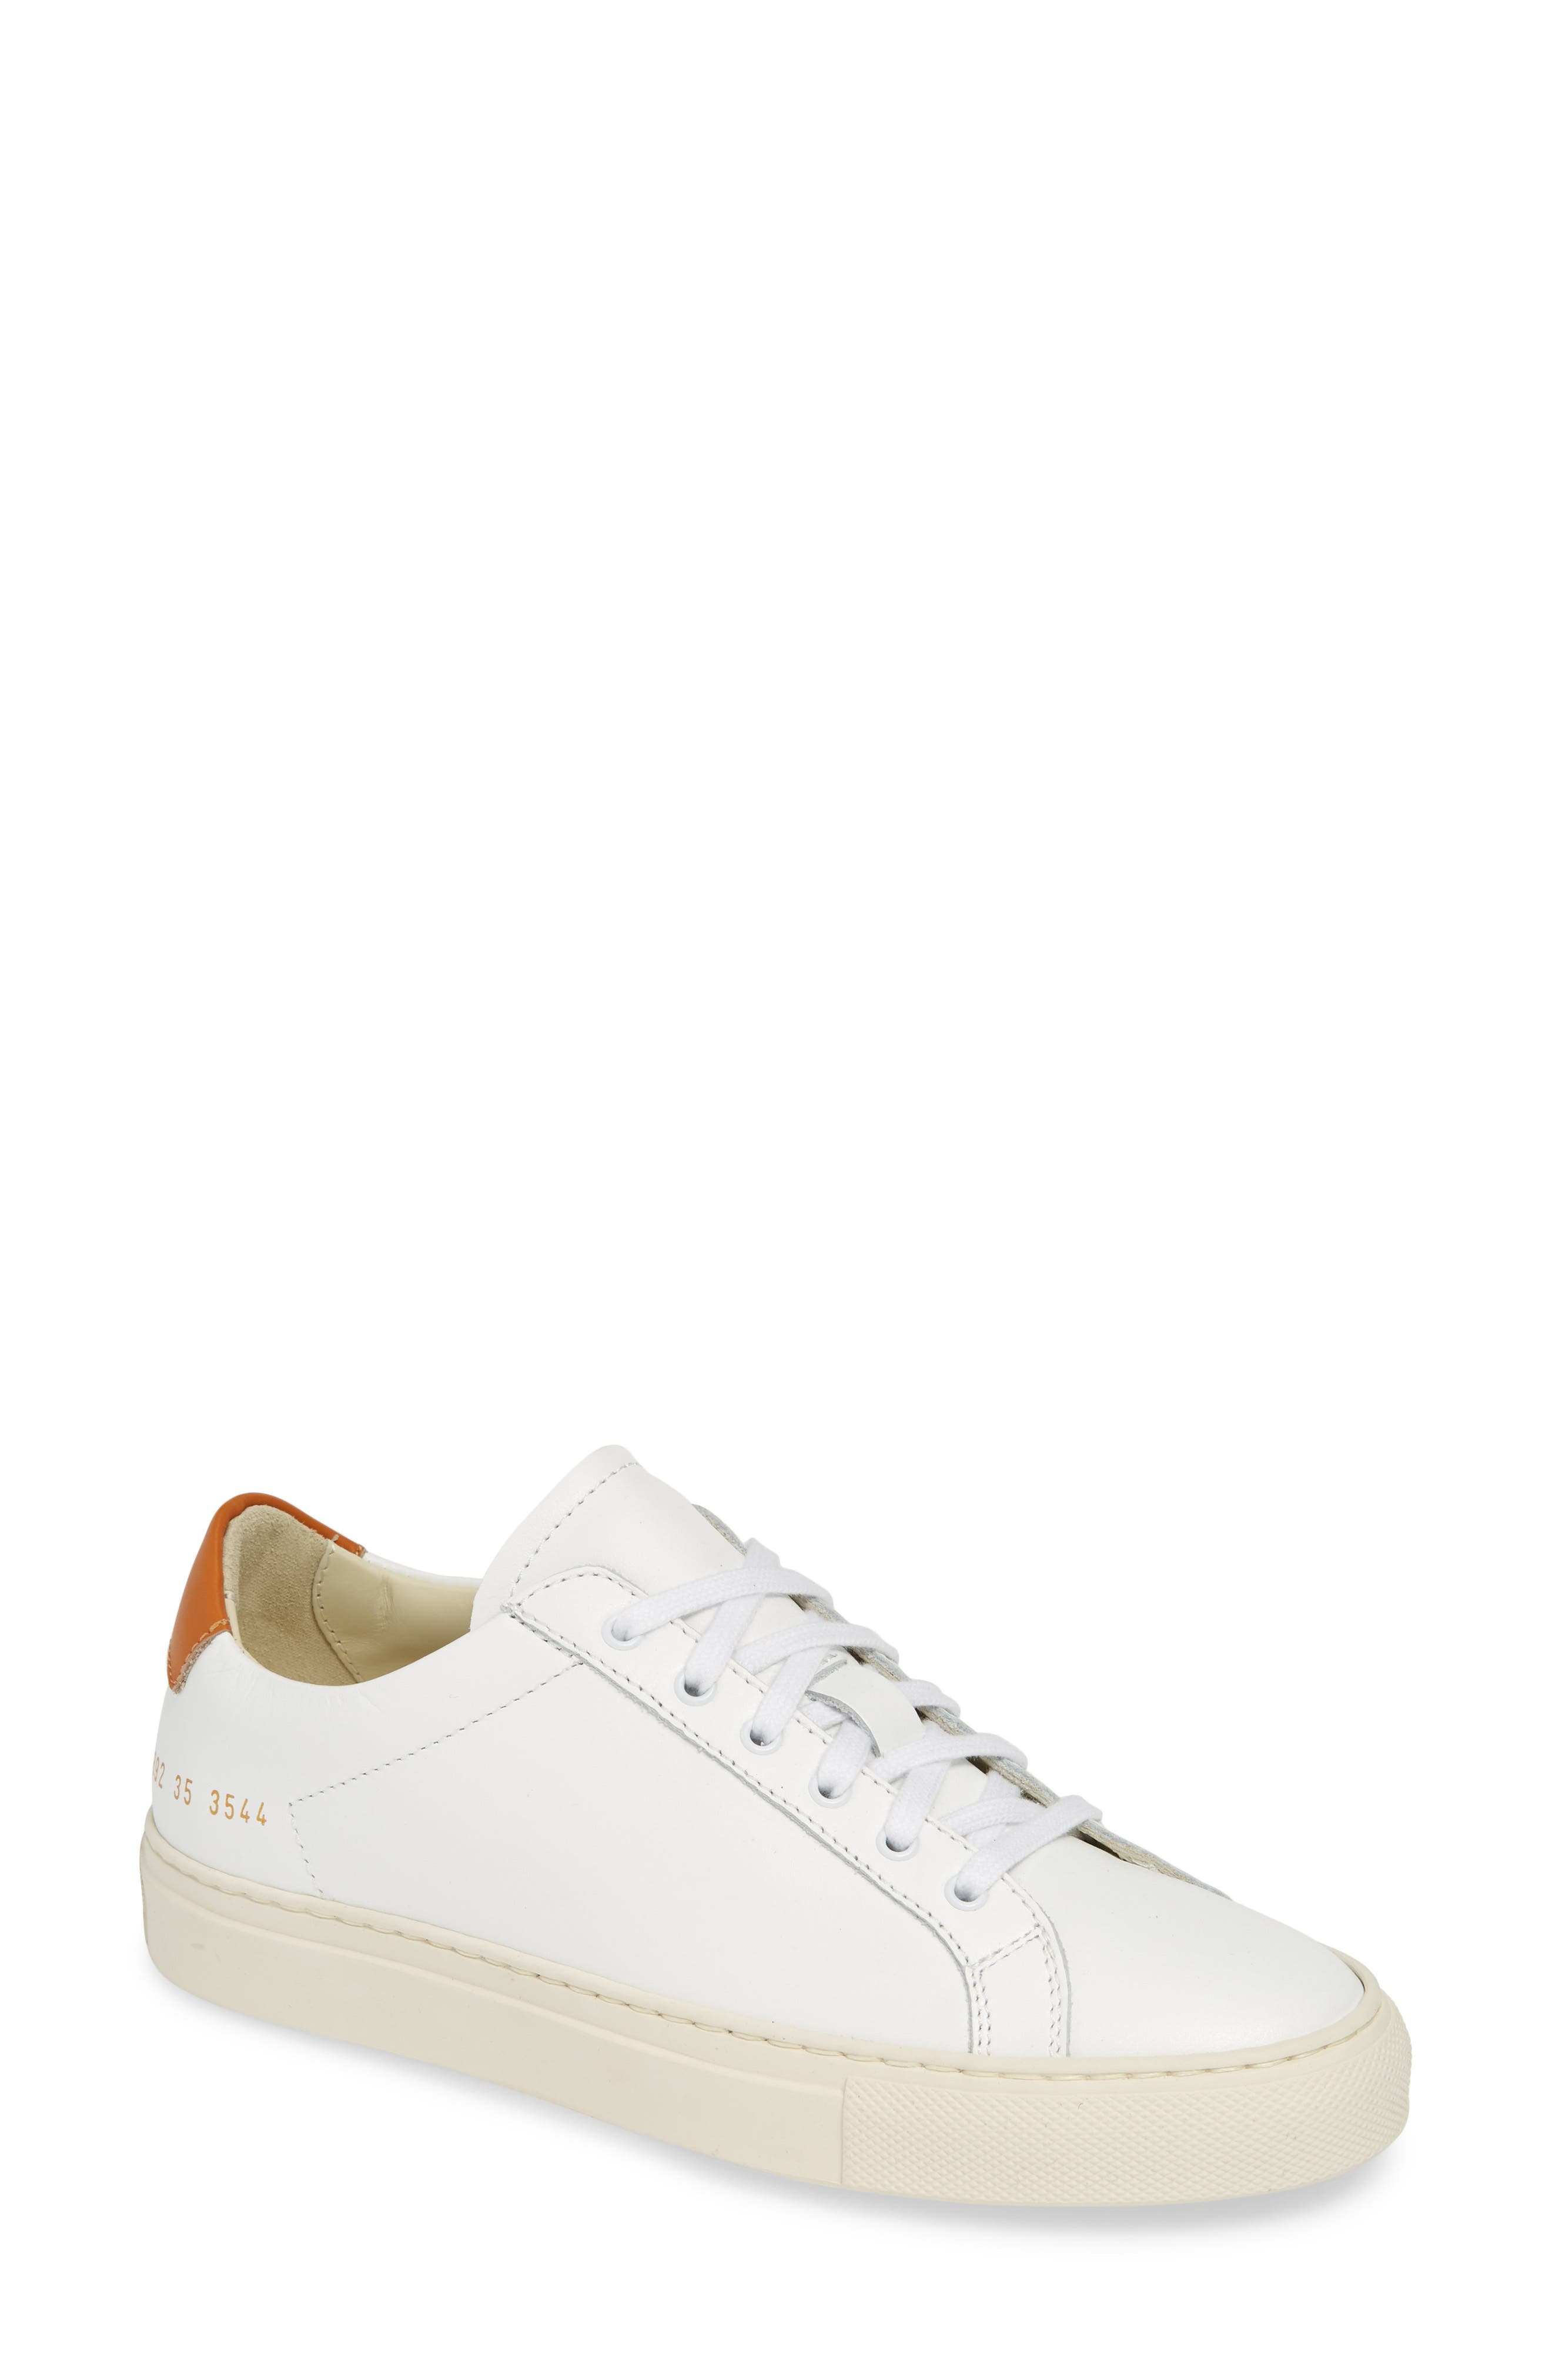 COMMON PROJECTS Retro Low Top Sneaker, Main, color, WHITE/ BROWN